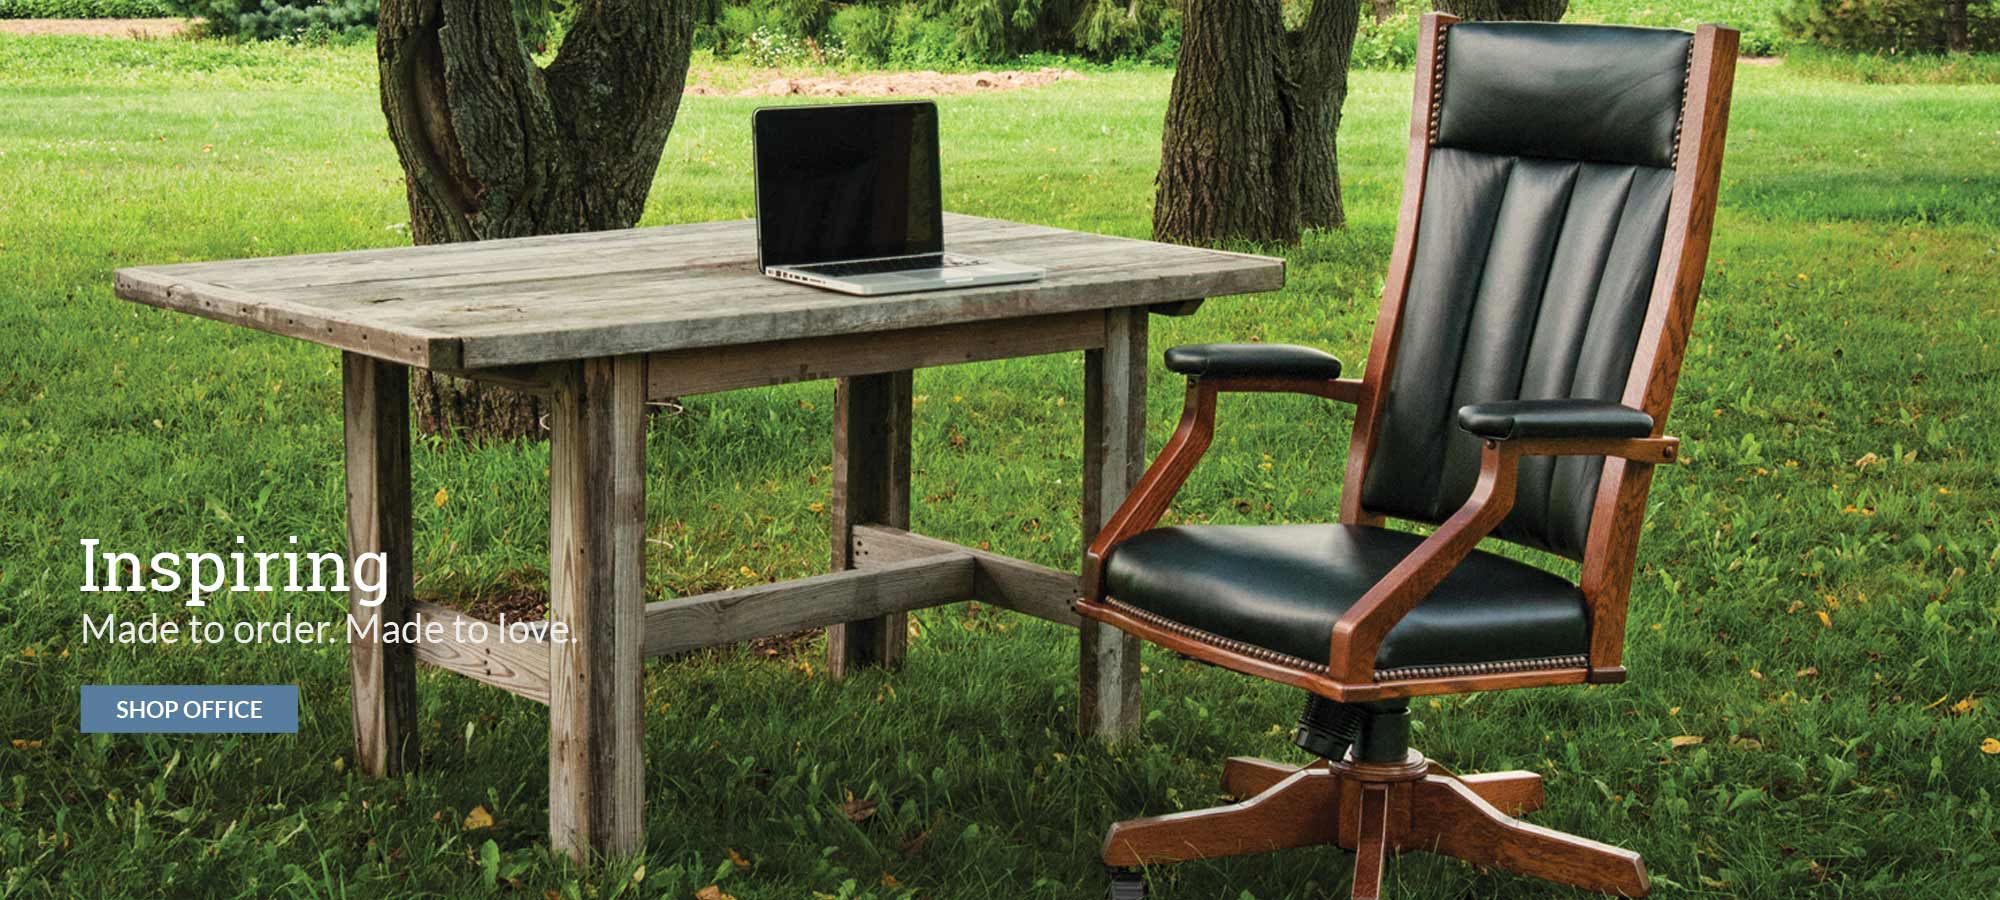 Mattie Lu - Artisan Crafted Furniture For Your Home